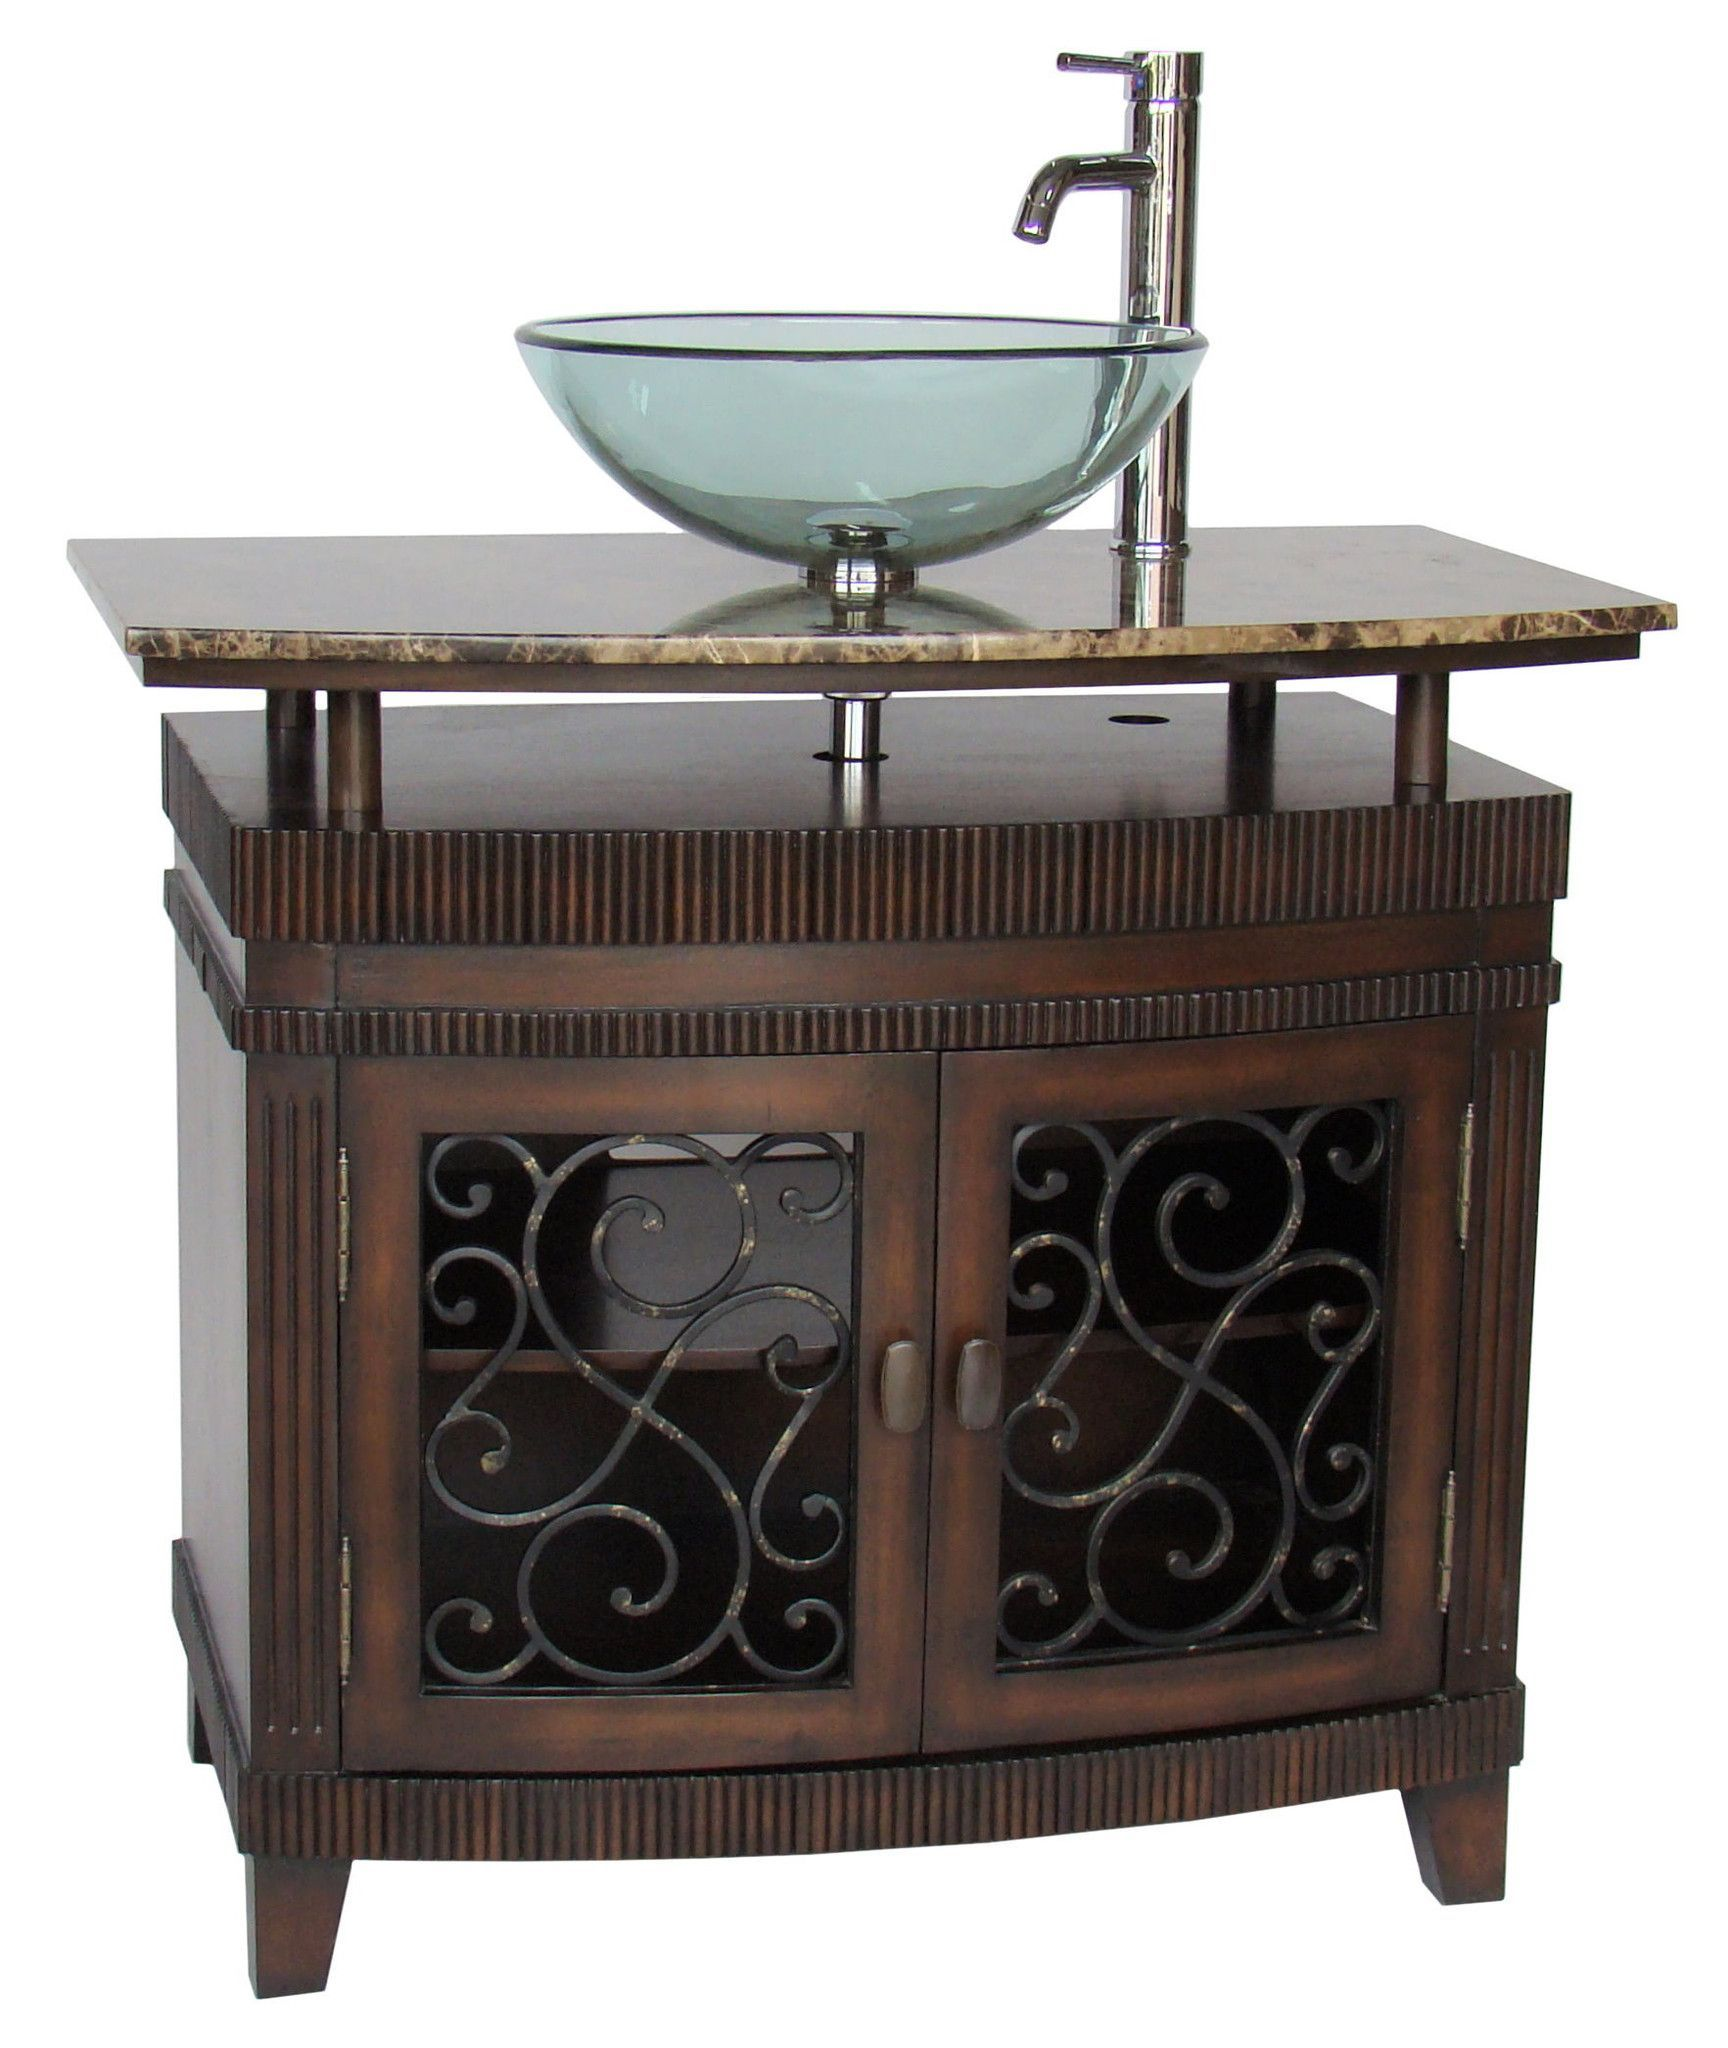 36 Benton Collection Unqiue Artturi Vessel Sink Bathroom Vanity